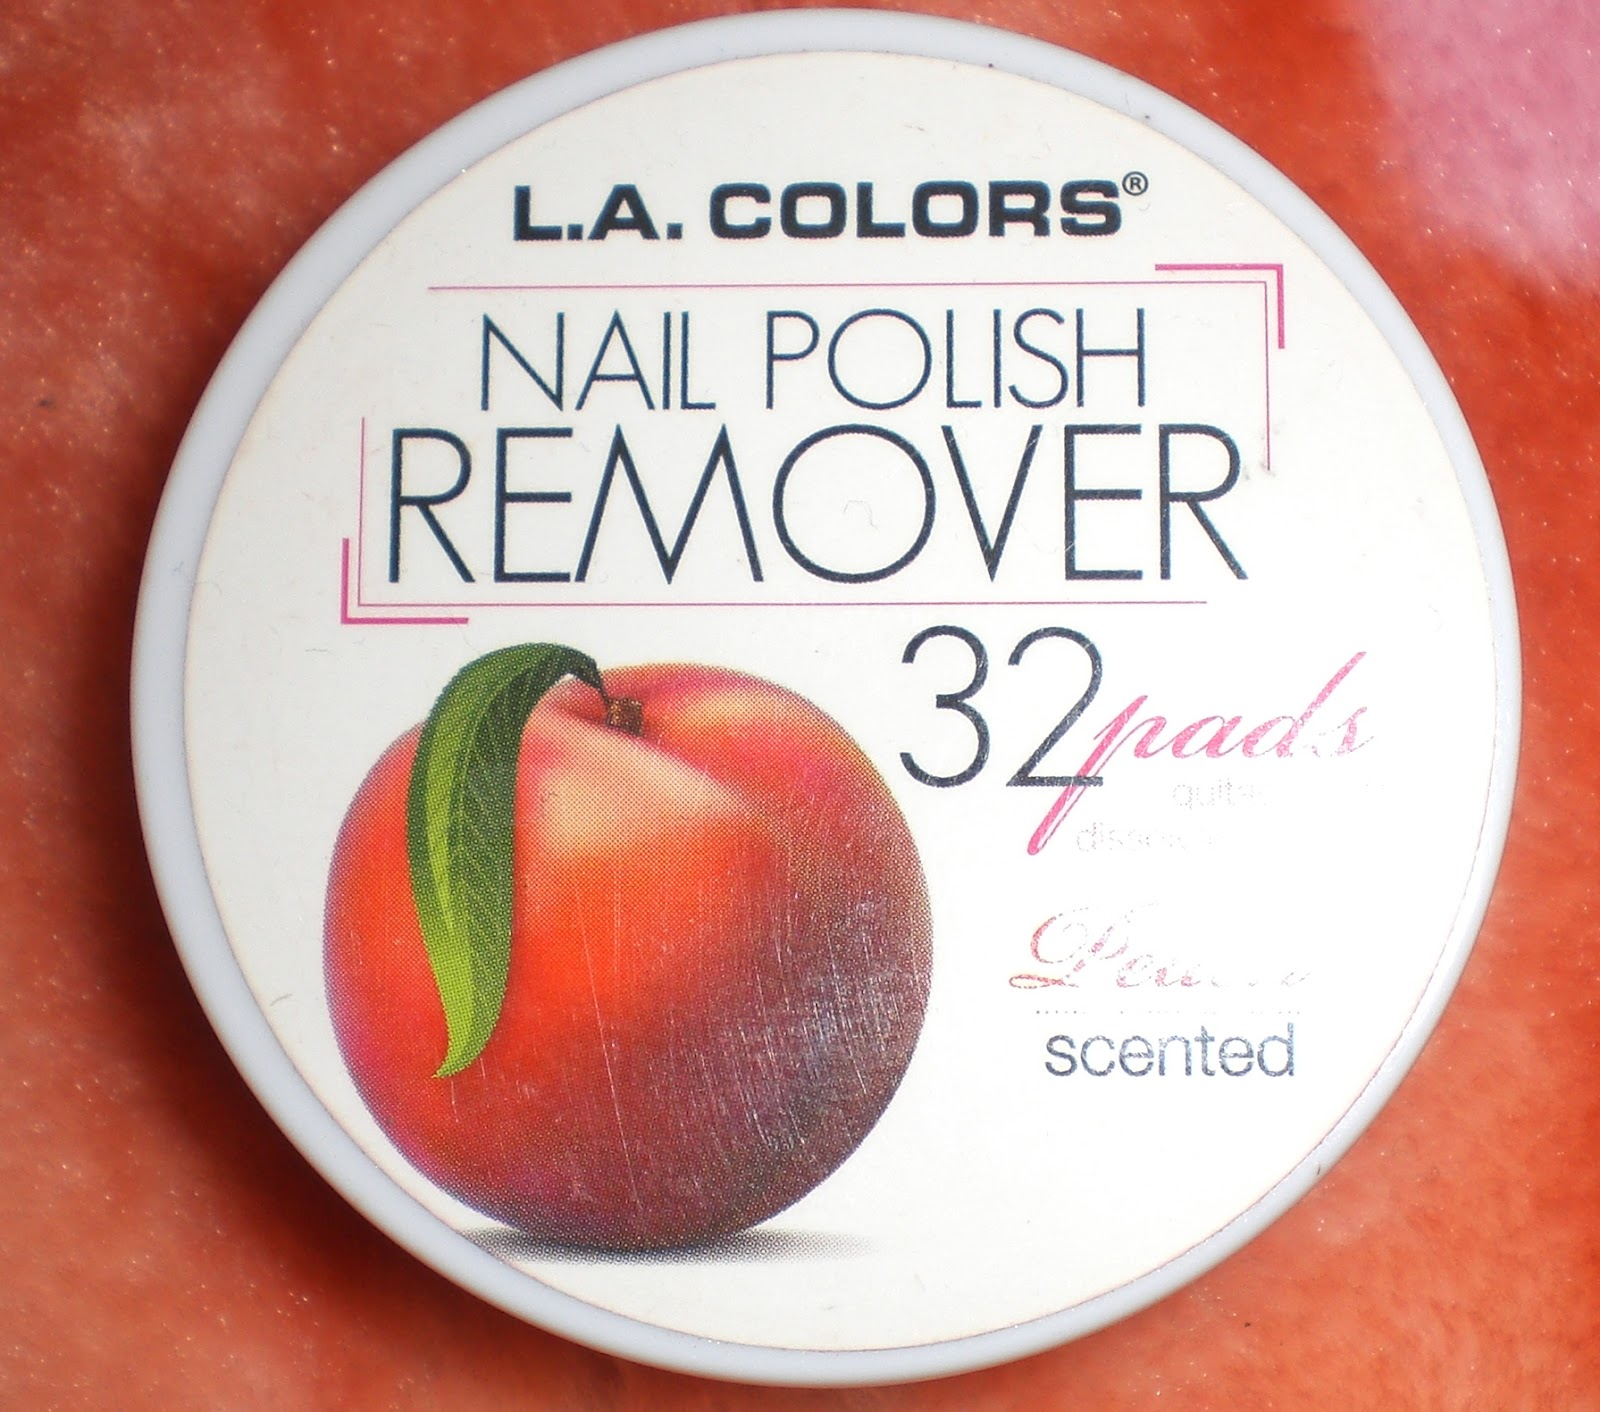 Cotton Candy Fro: L.A. Colors Nail Polish Remover Pads